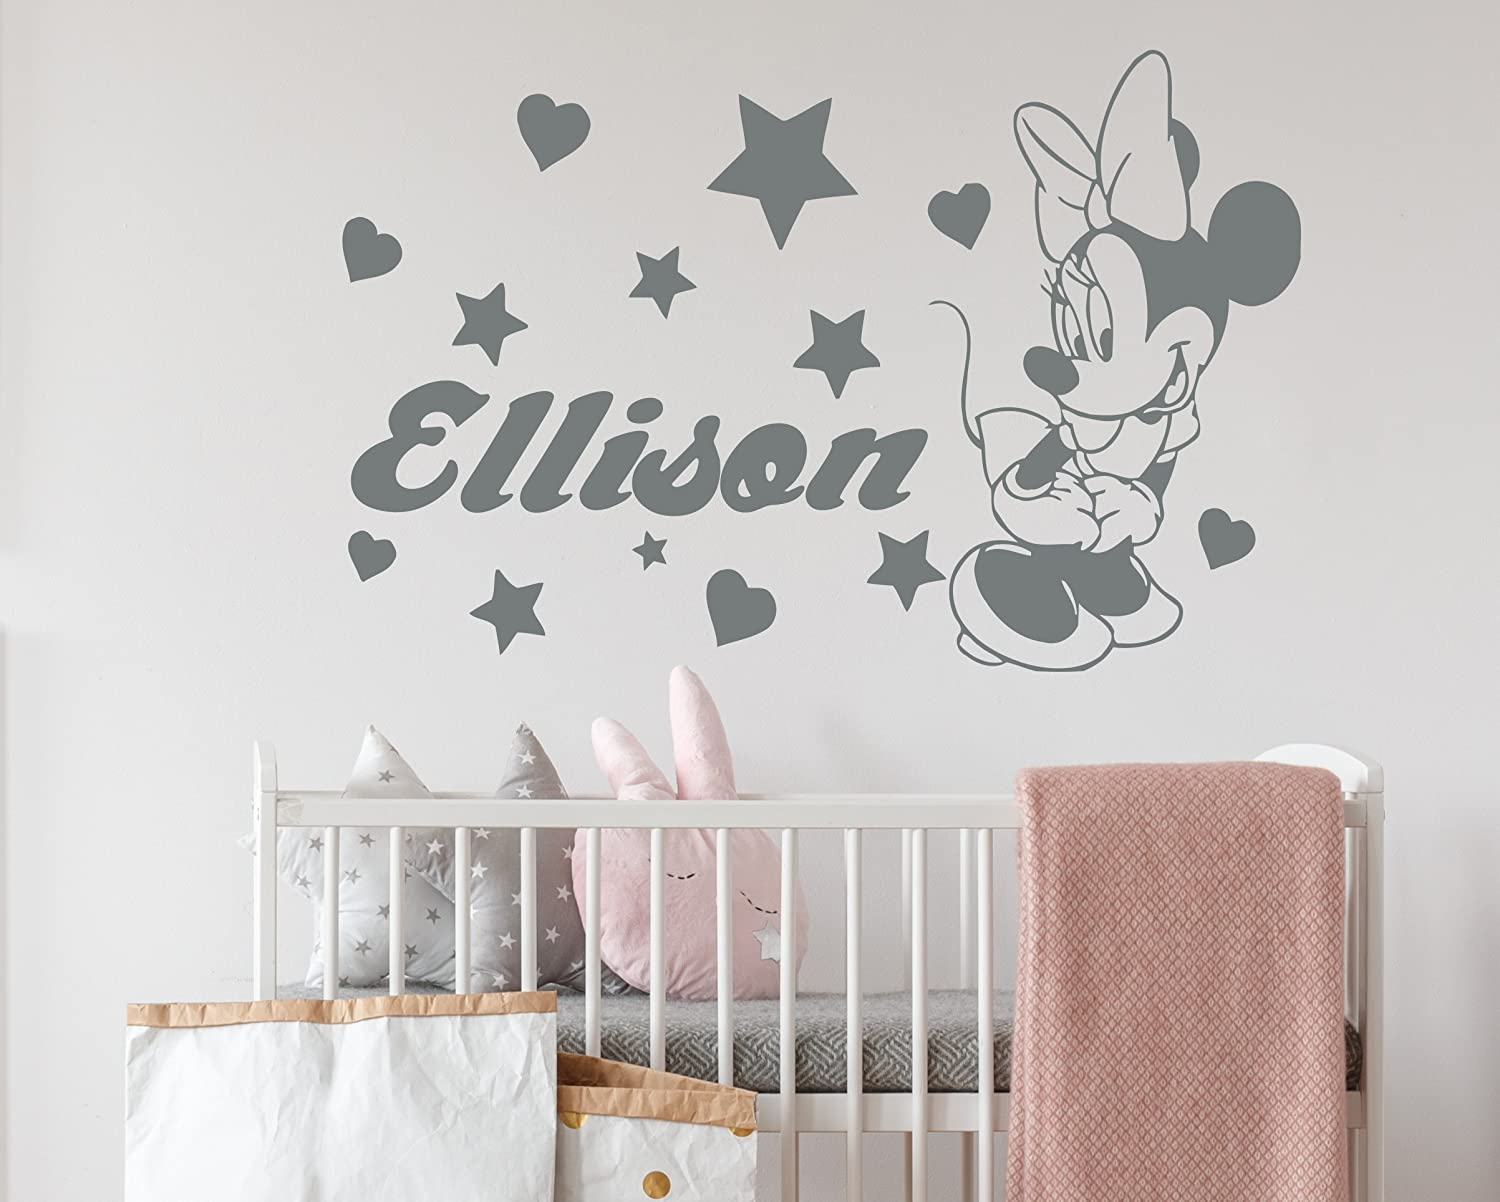 LARGE PERSONALISED CHILDRENS BEDROOM QUOTE PIRATES WALL STICKER TRANSFER DECAL